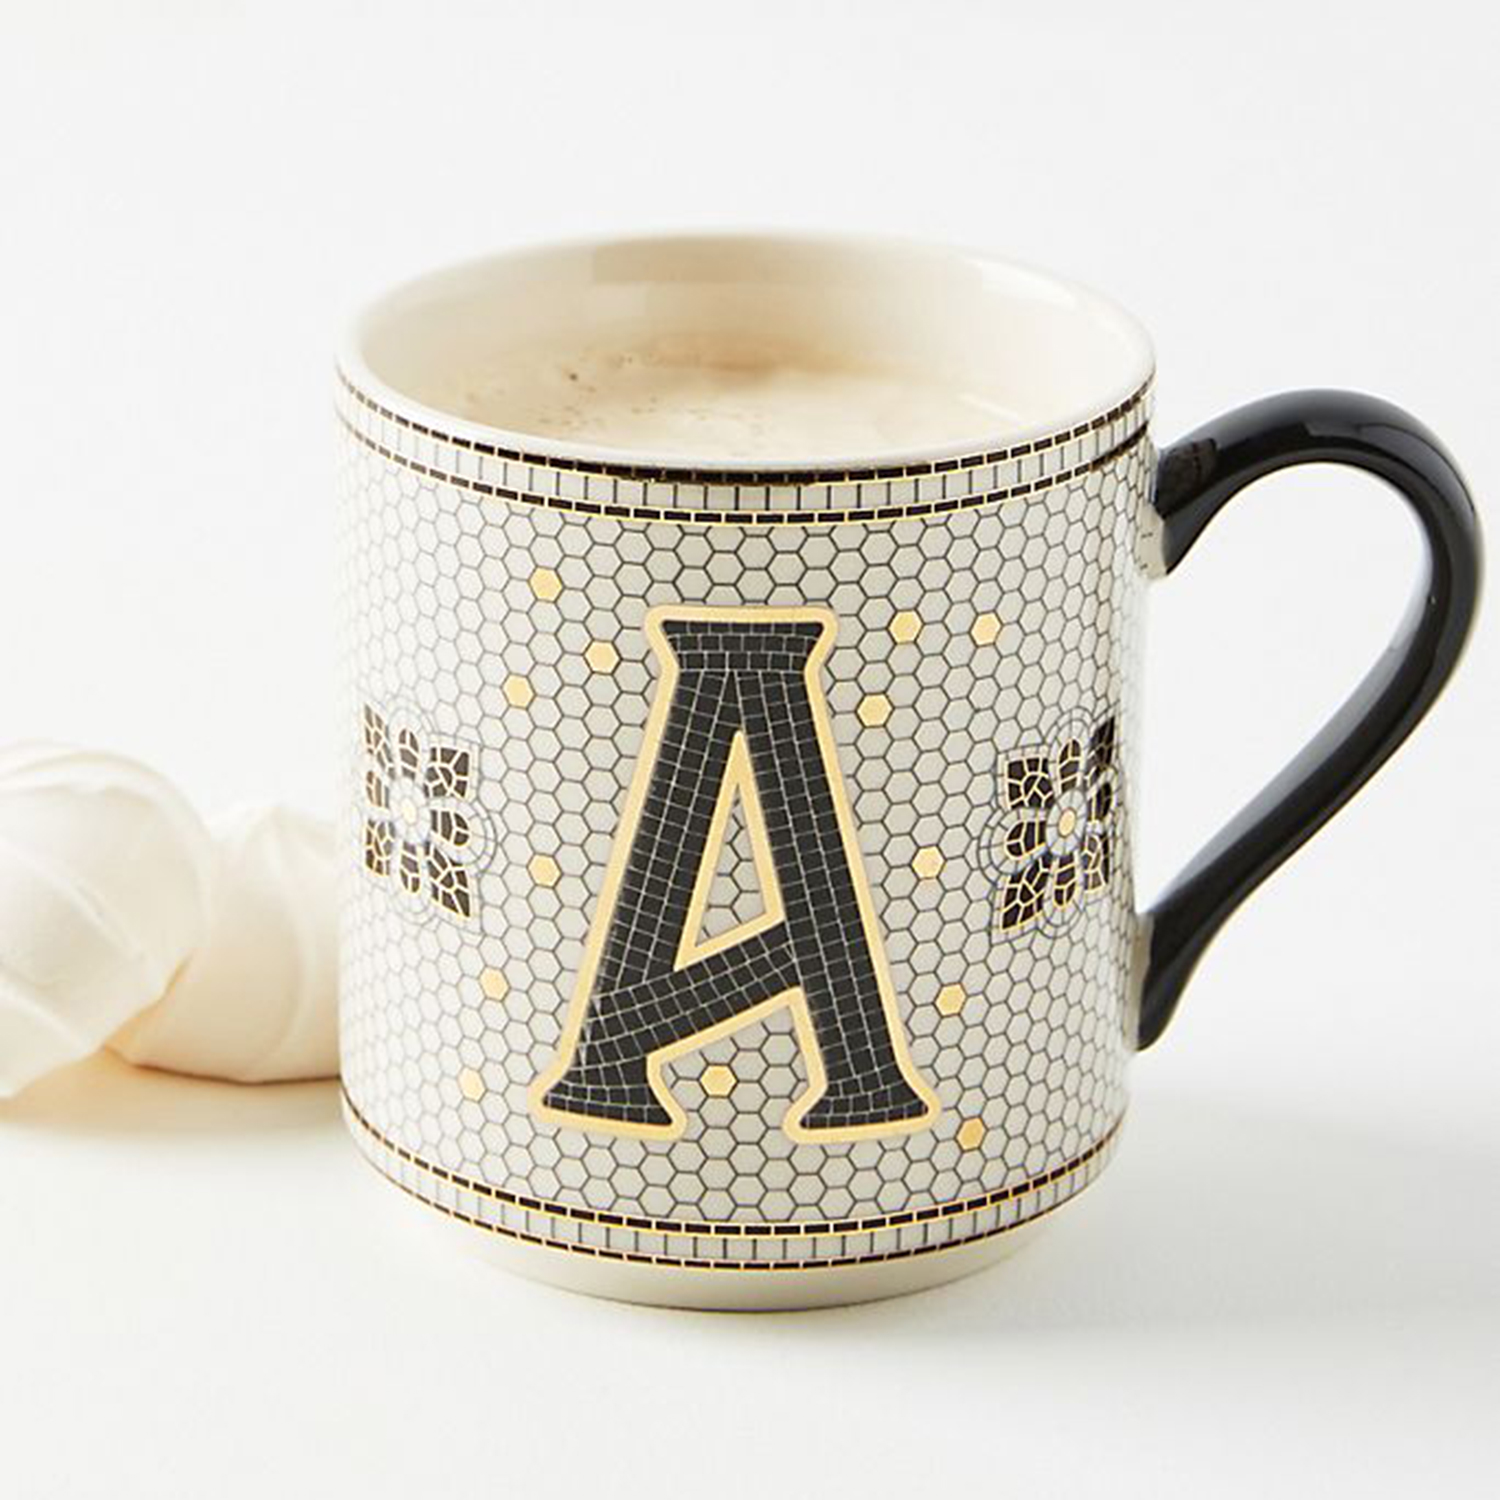 Tiled Margot Monogram Mug